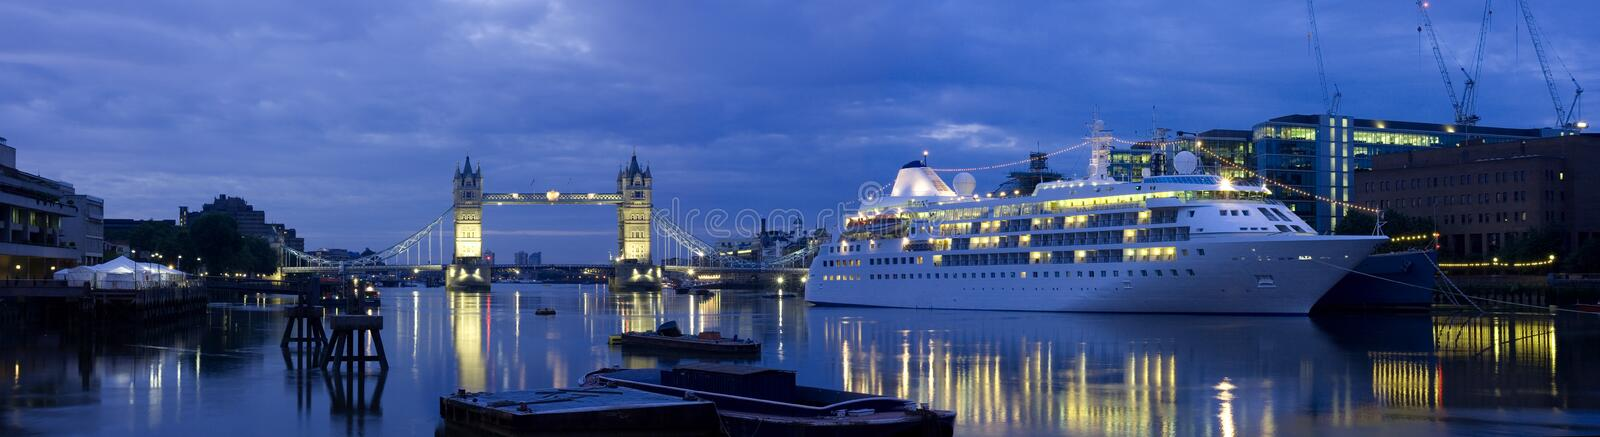 Download Tower Bridge And Cruise Liner Stock Photography - Image: 5576982